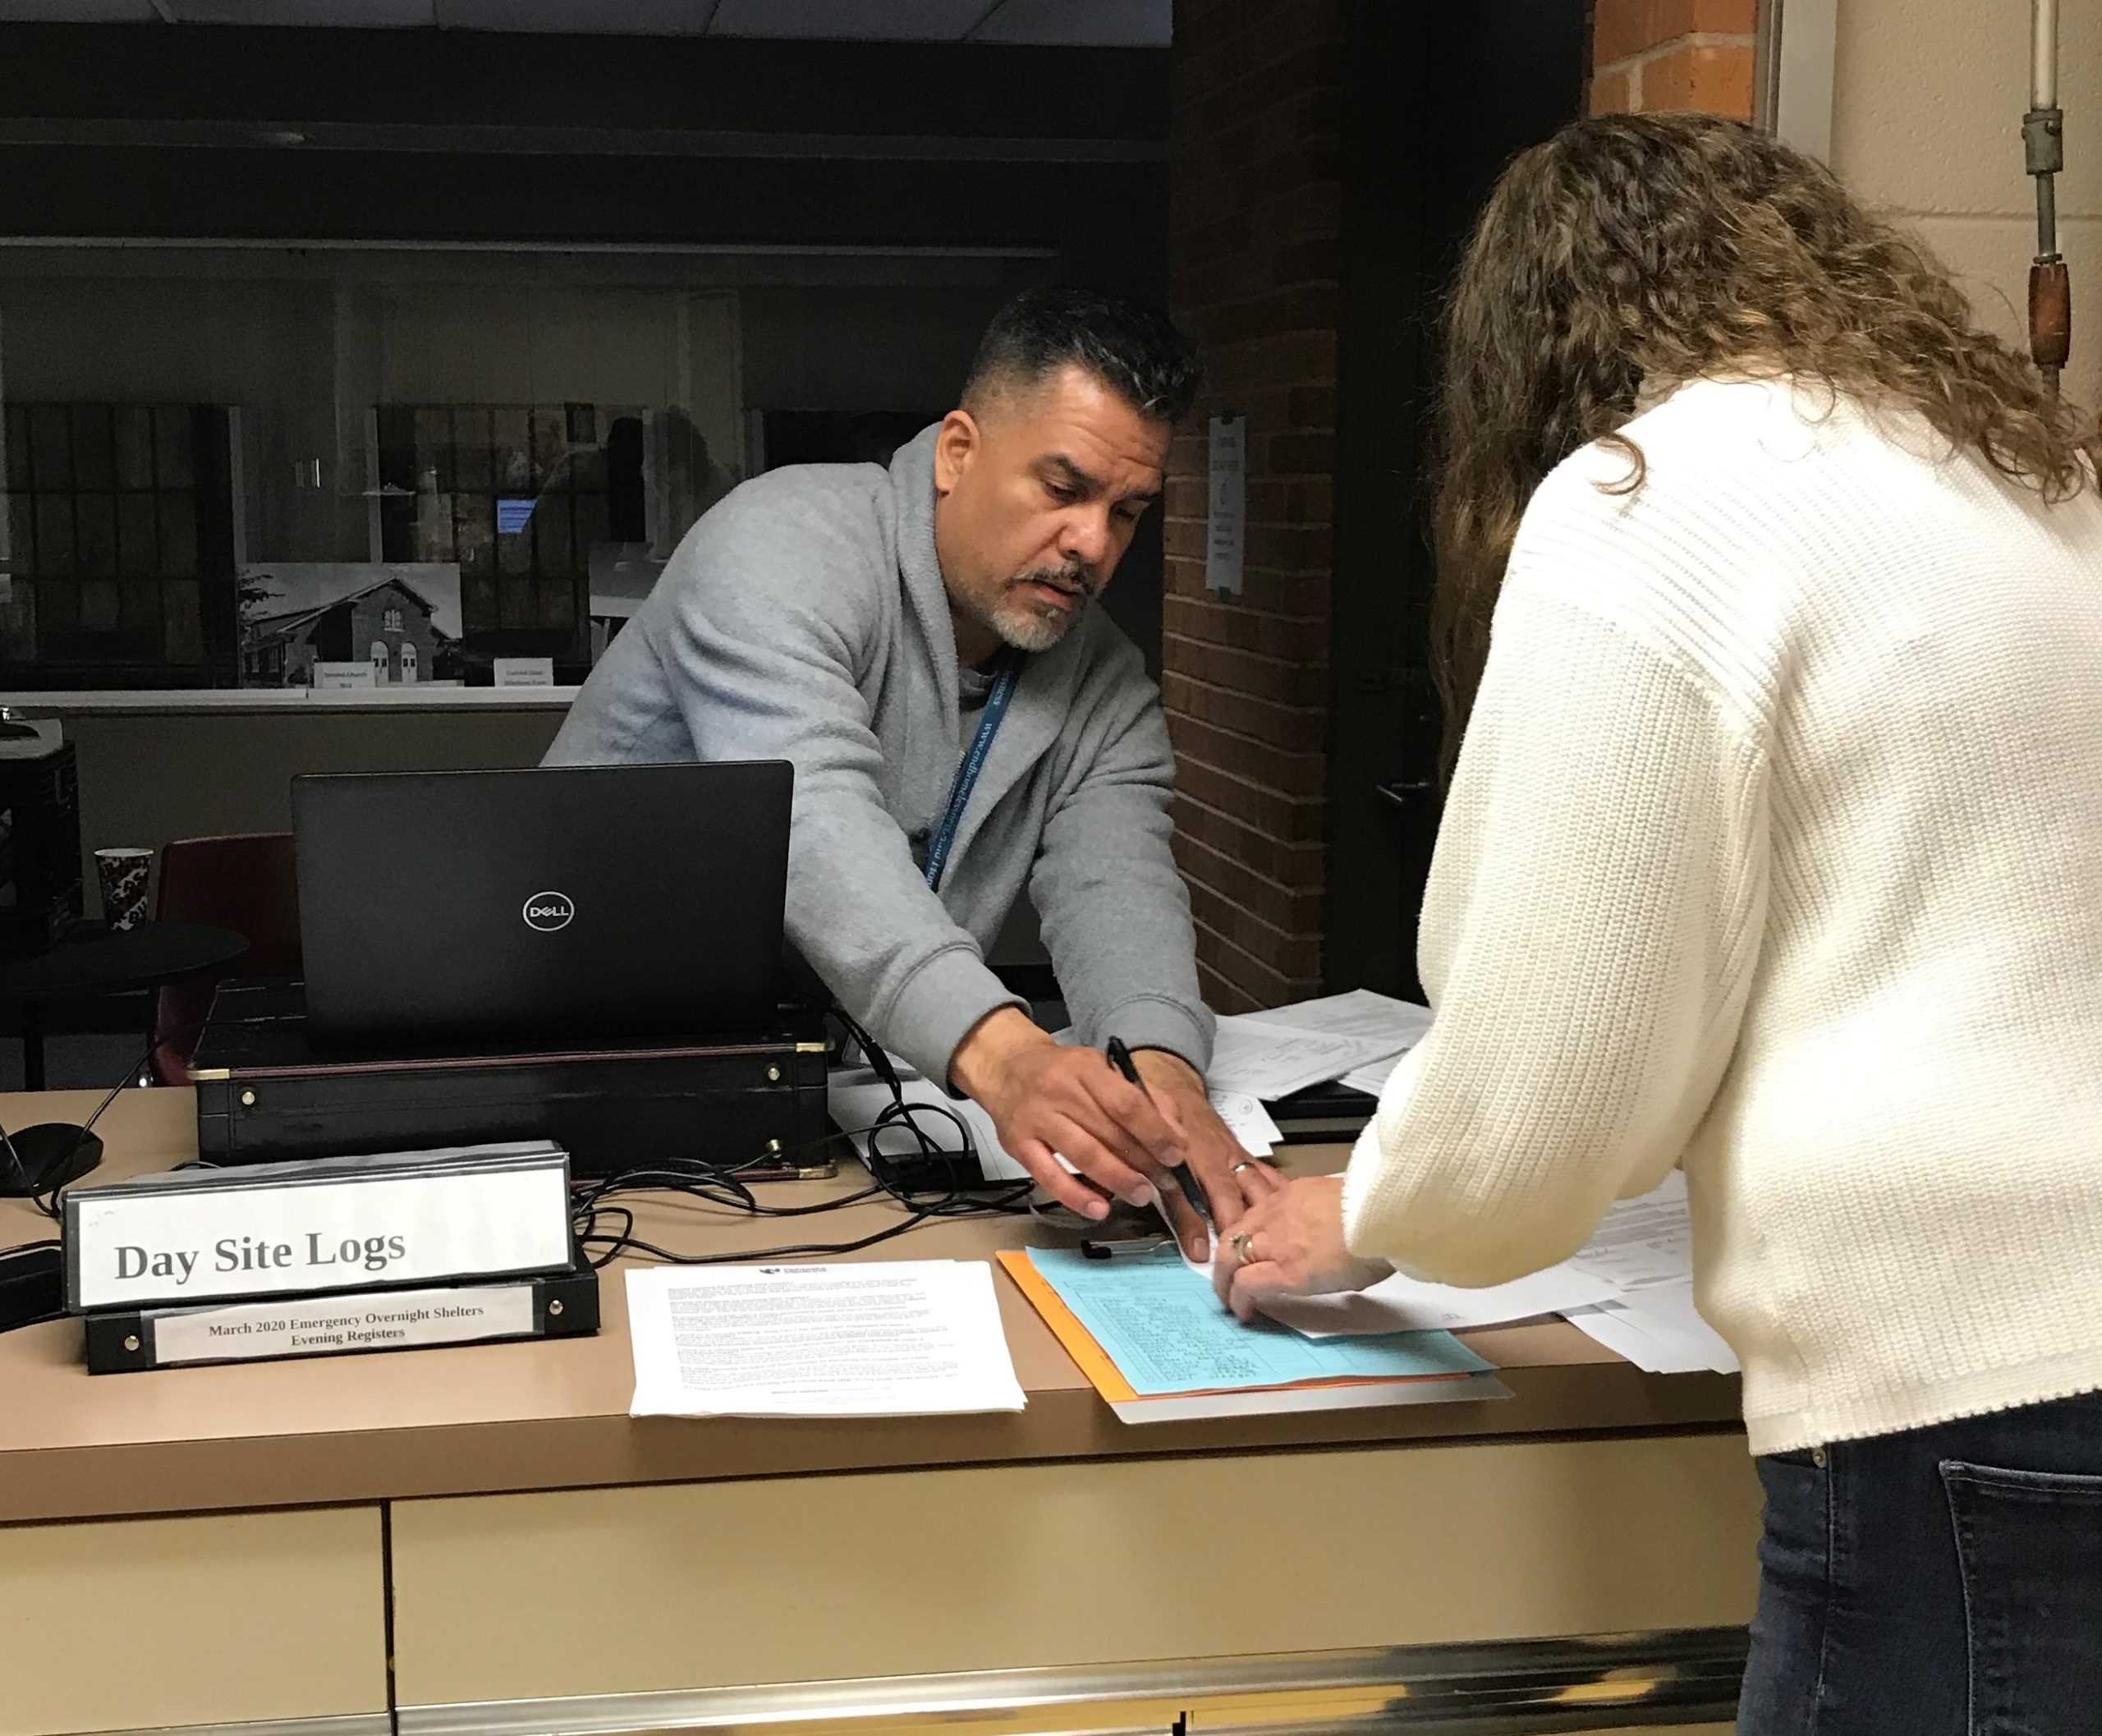 Man leaning over to sign paper work for a woman while also on the phone